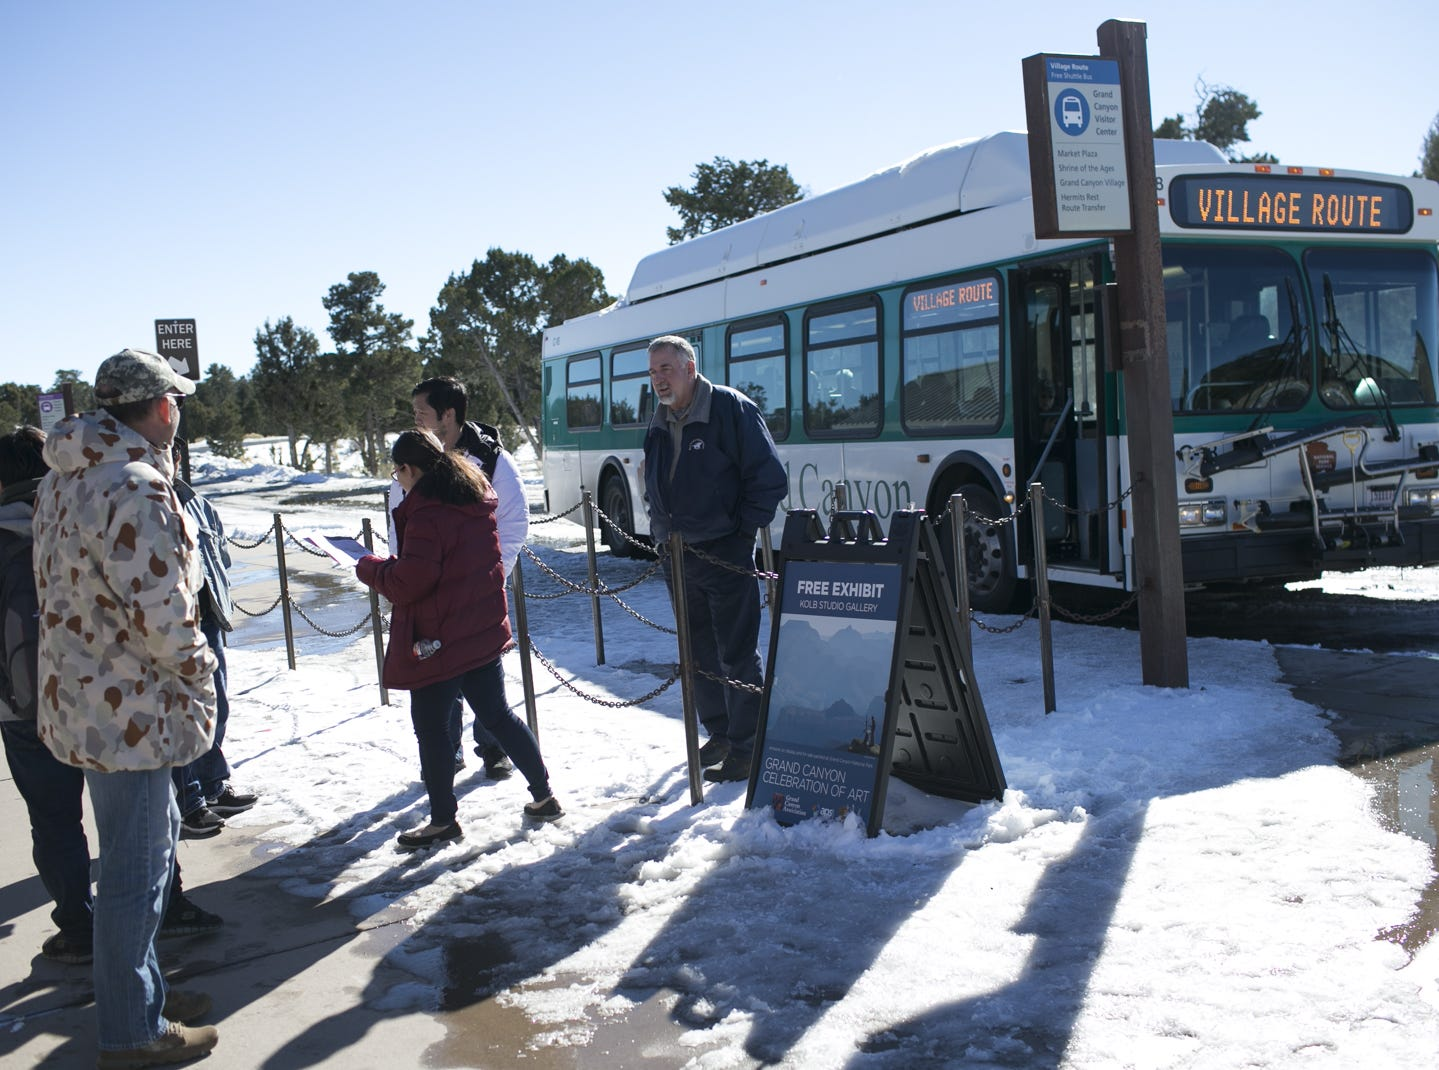 Visitors wait to ride a shuttle bus at Grand Canyon National Park on Jan. 4, 2019. The park was staffed at minimum capacity due to the government shutdown but retained much of its services due to an executive order issued by Arizona Gov. Doug Ducey to run the park with state funds in the event of a shutdown.